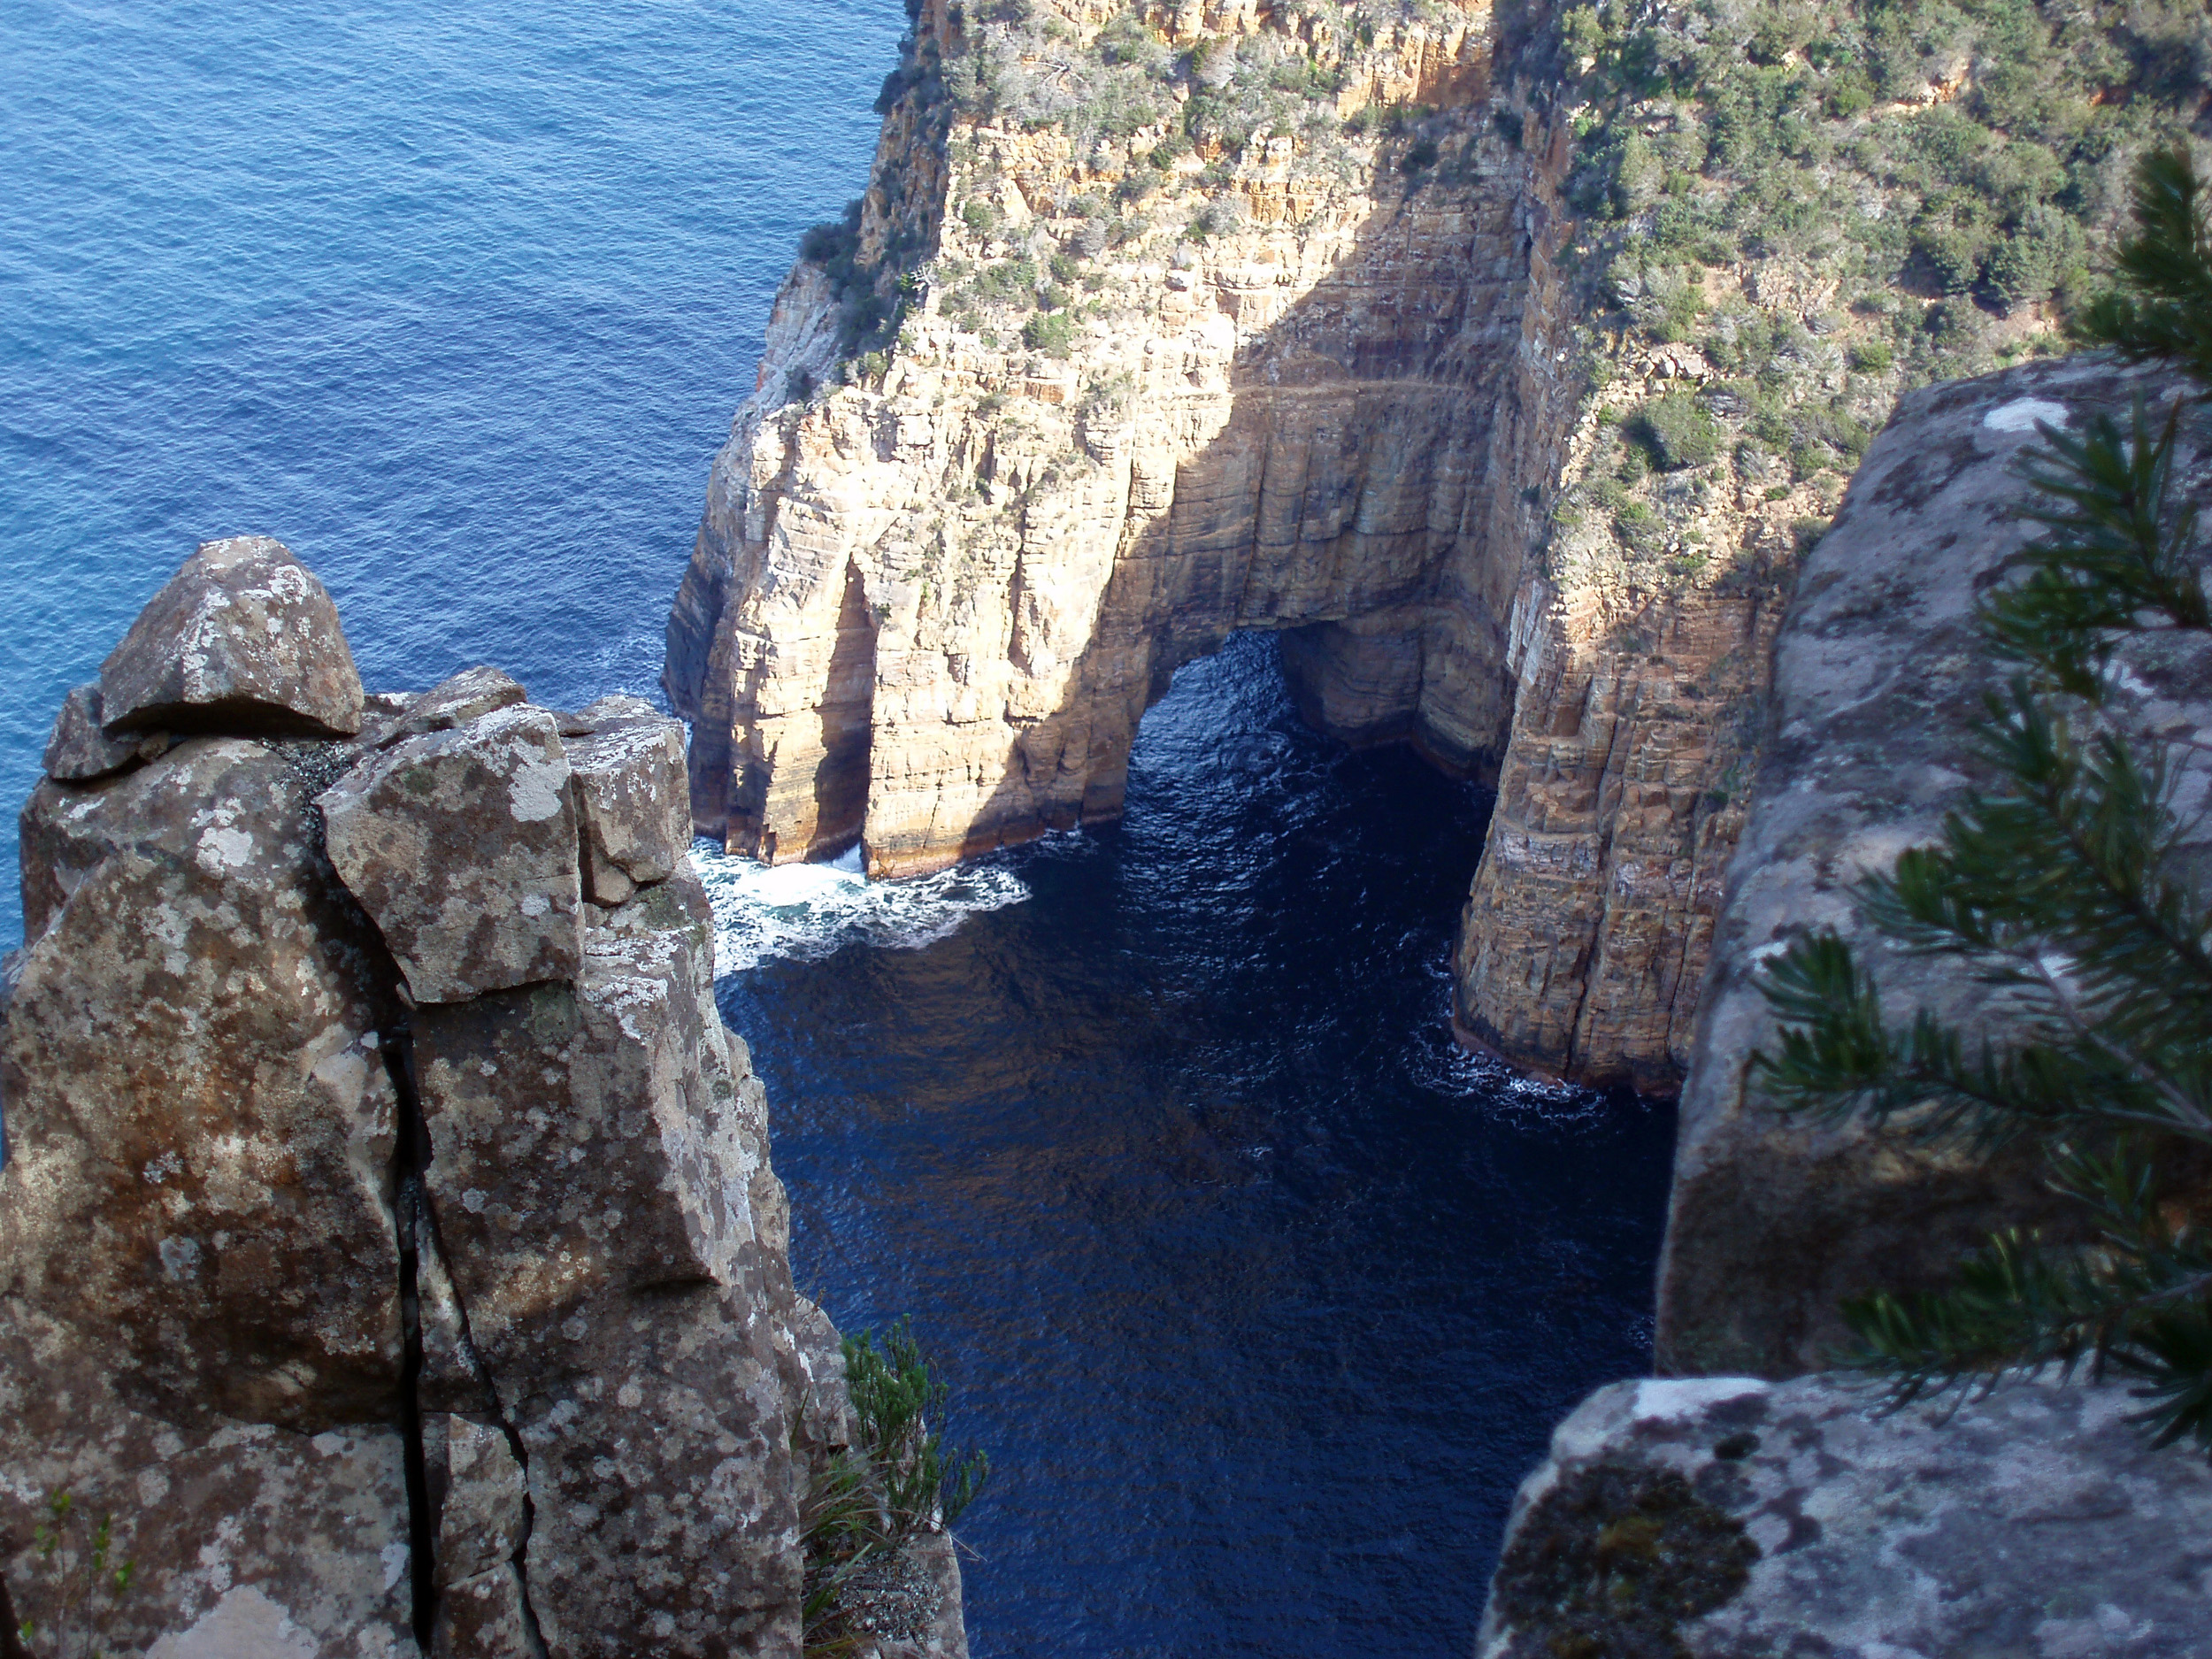 a rock arch erdoded by water into the cliffs of the tasman peninsula between cape pillar and cape hauy